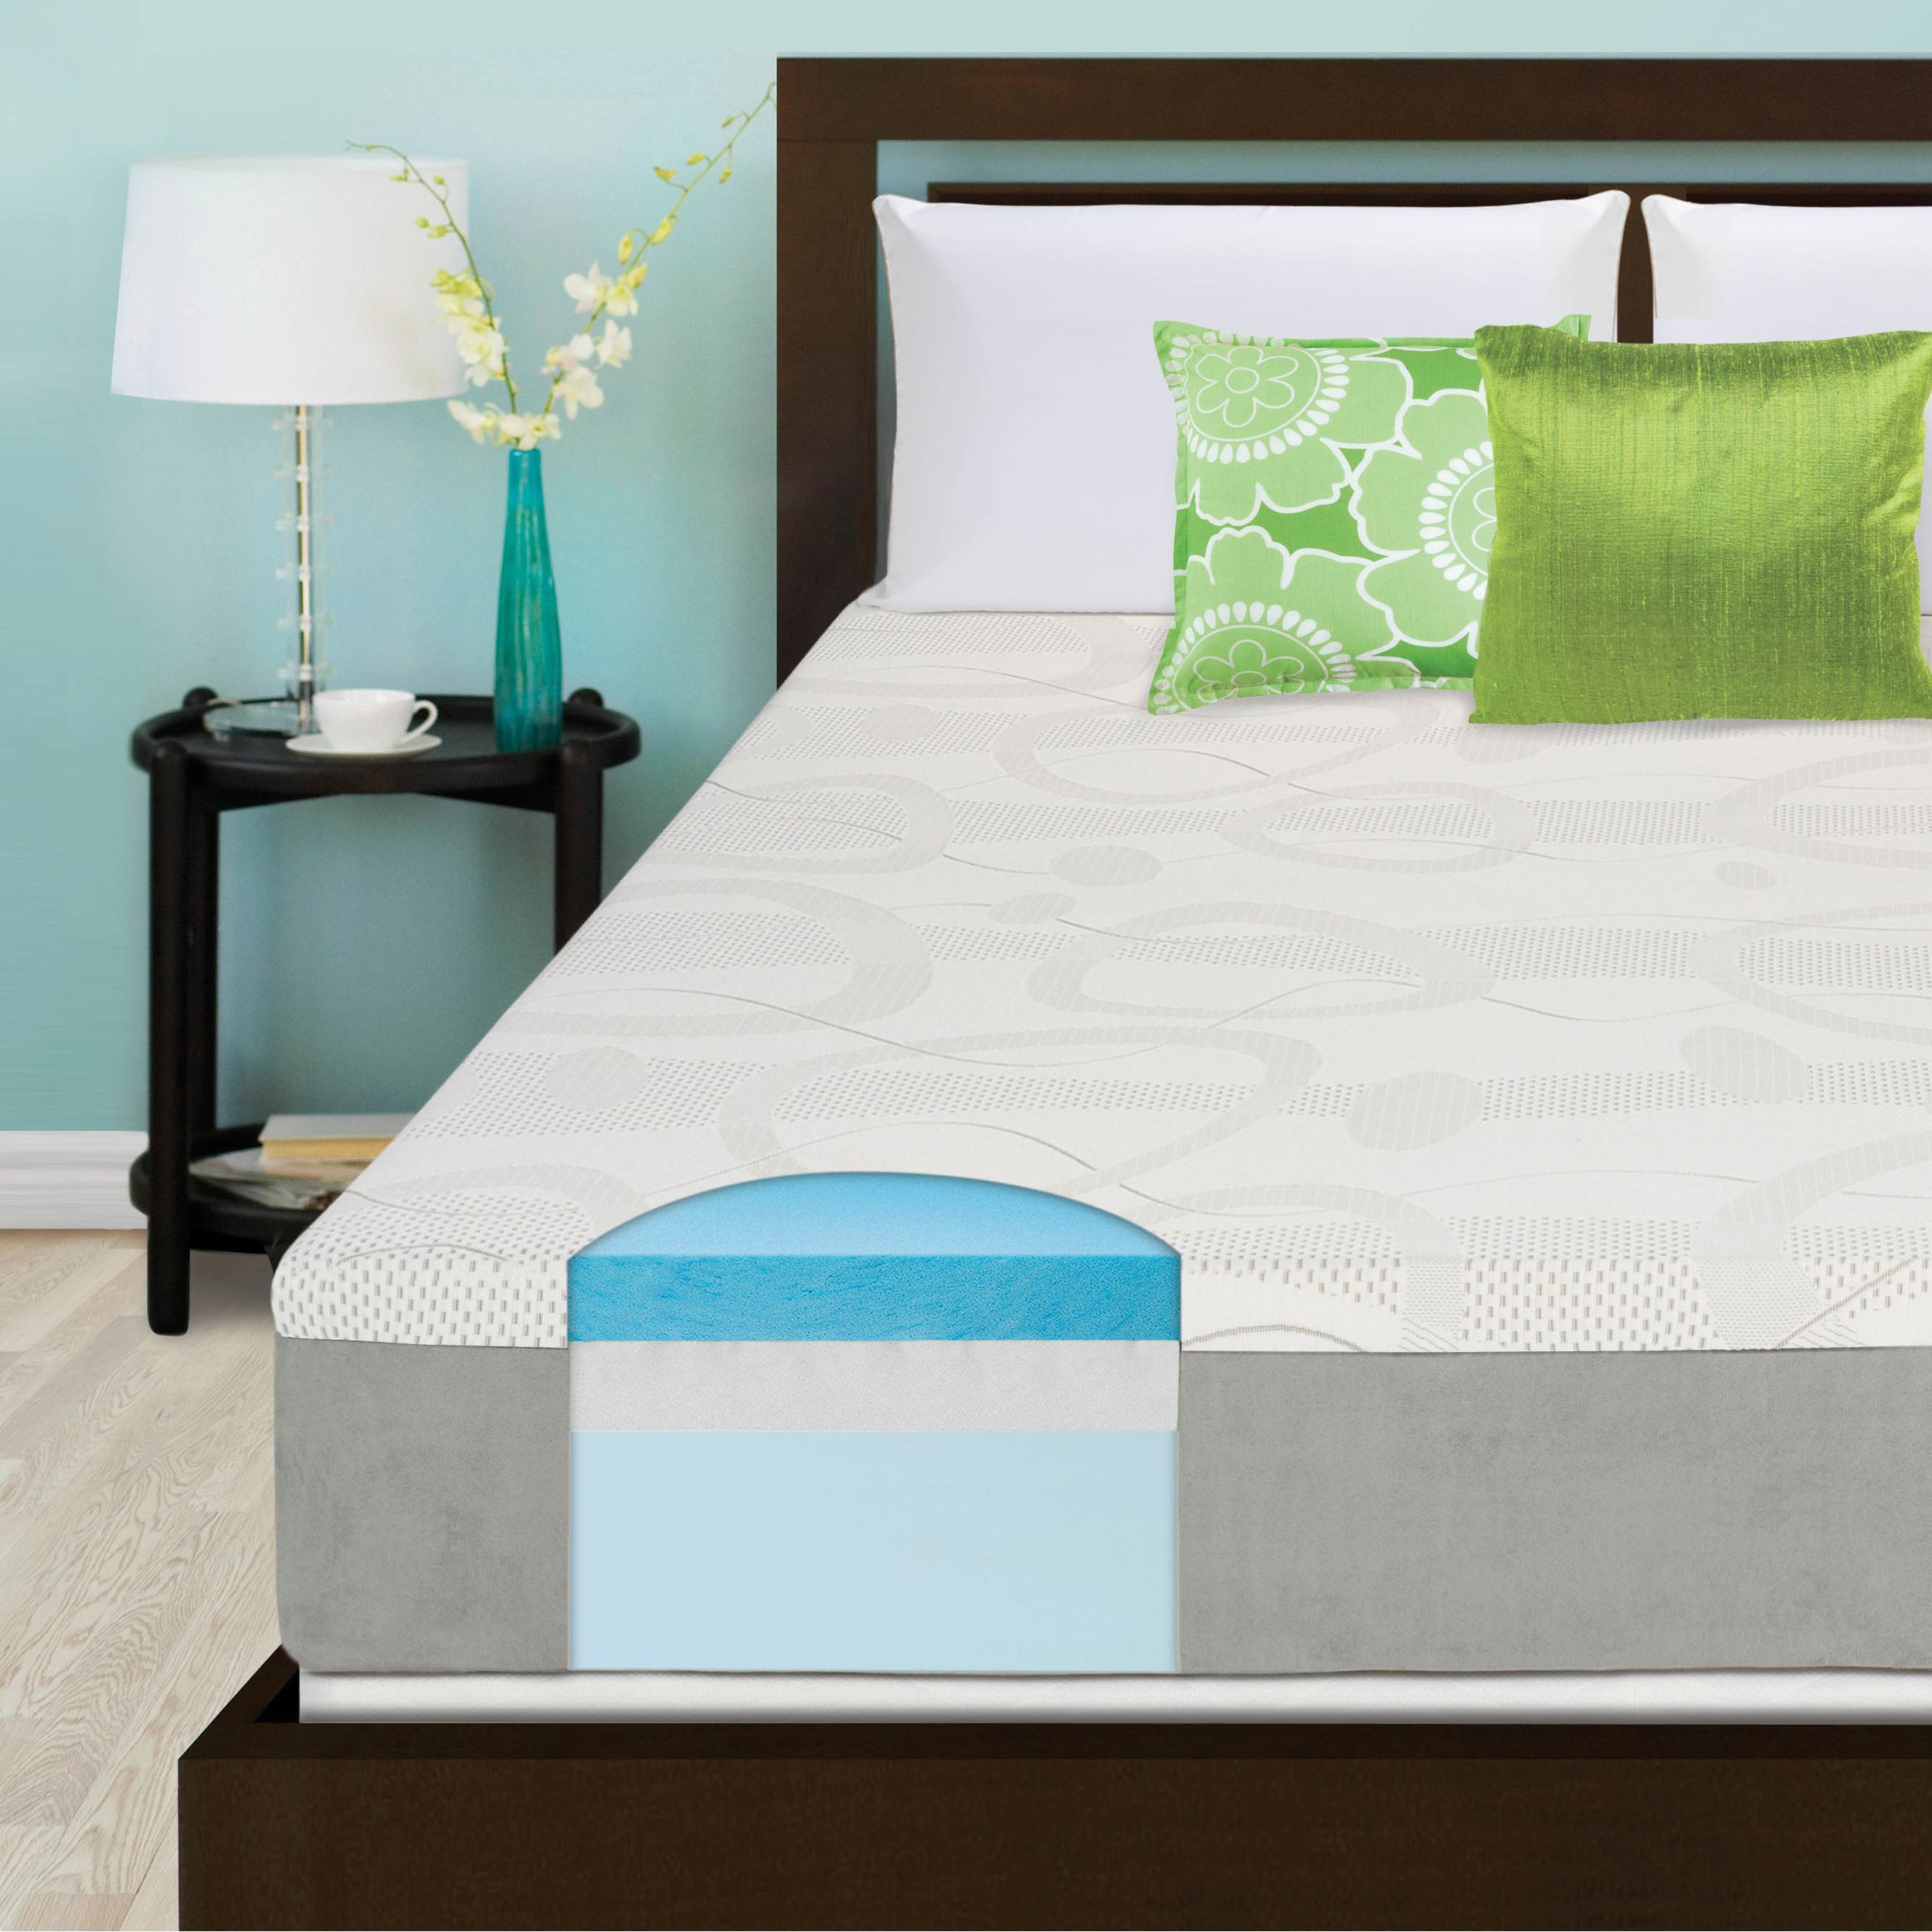 Slumber Solutions Choose Your Comfort 10 Inch Gel Memory Foam Mattress Foam Mattress Mattress Queen Memory Foam Mattress